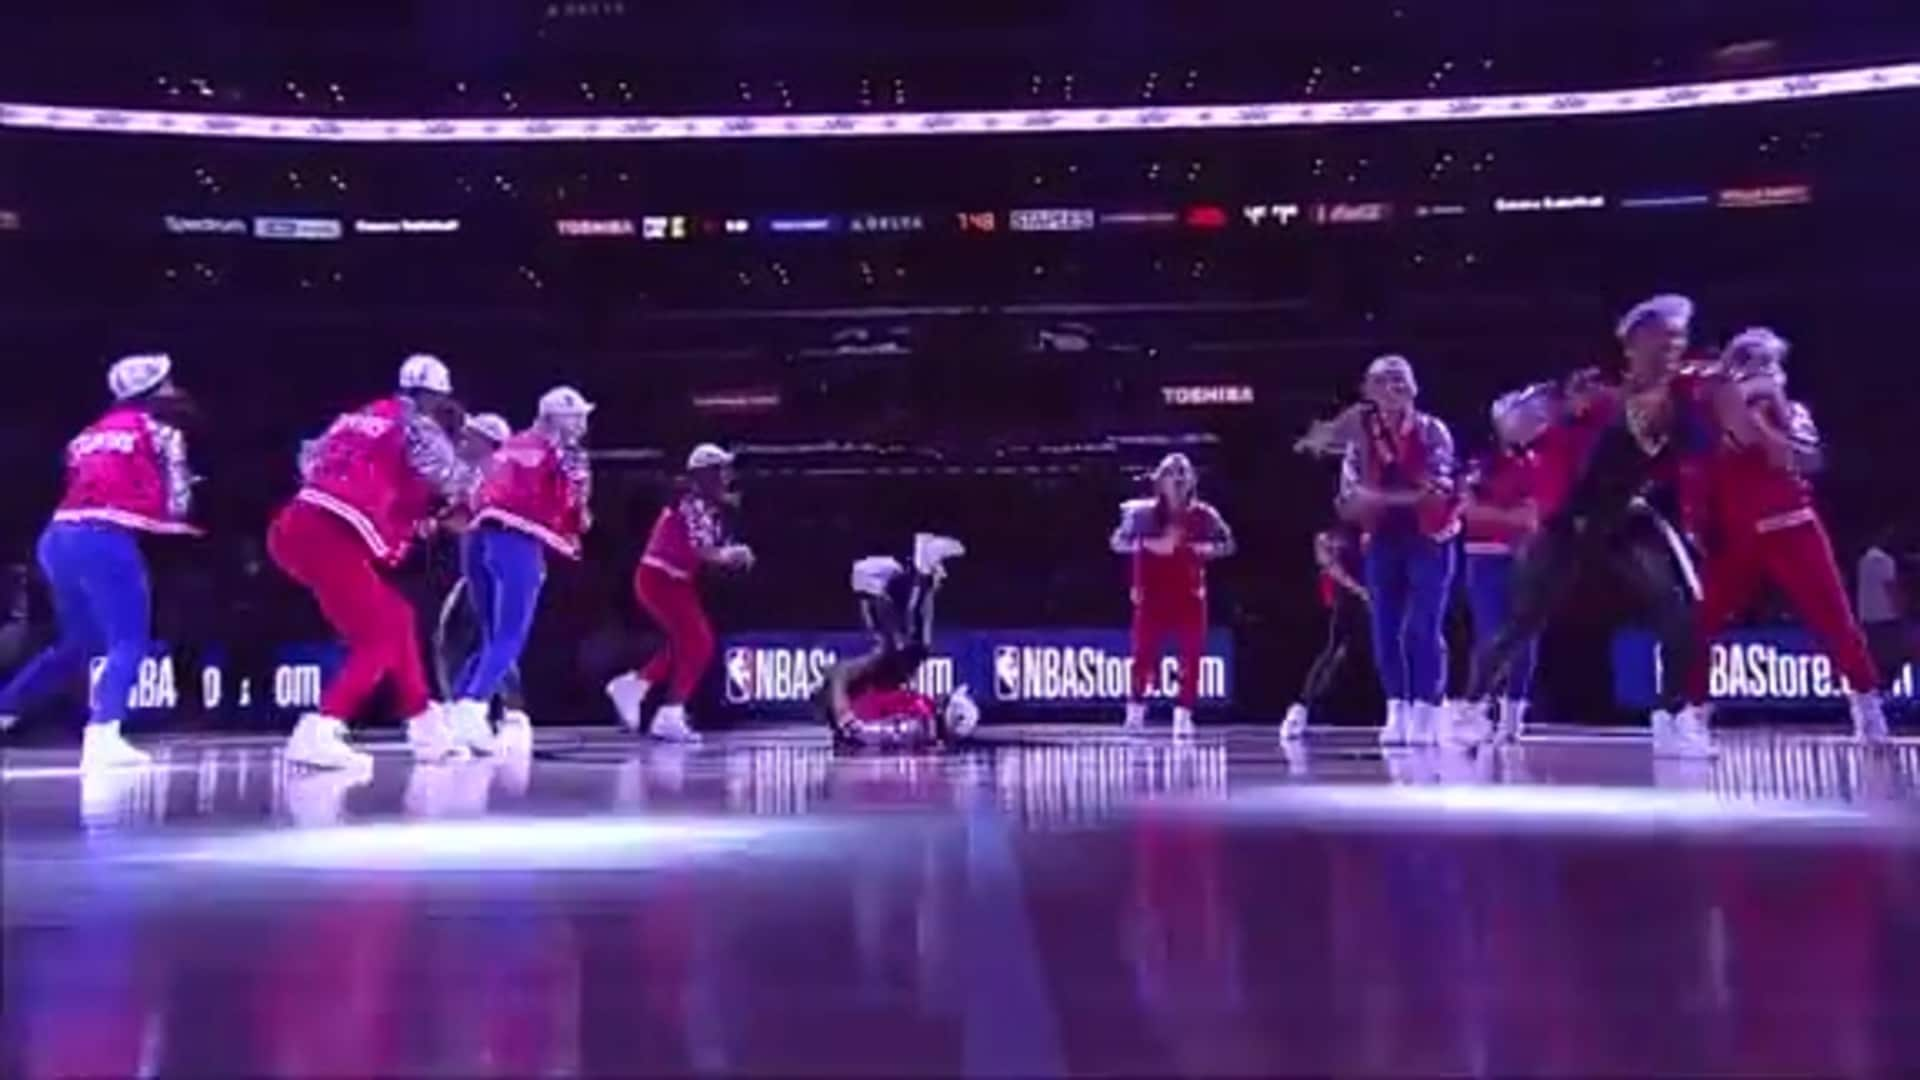 80s Night | Clippers Spirit Performance (12.03.19)